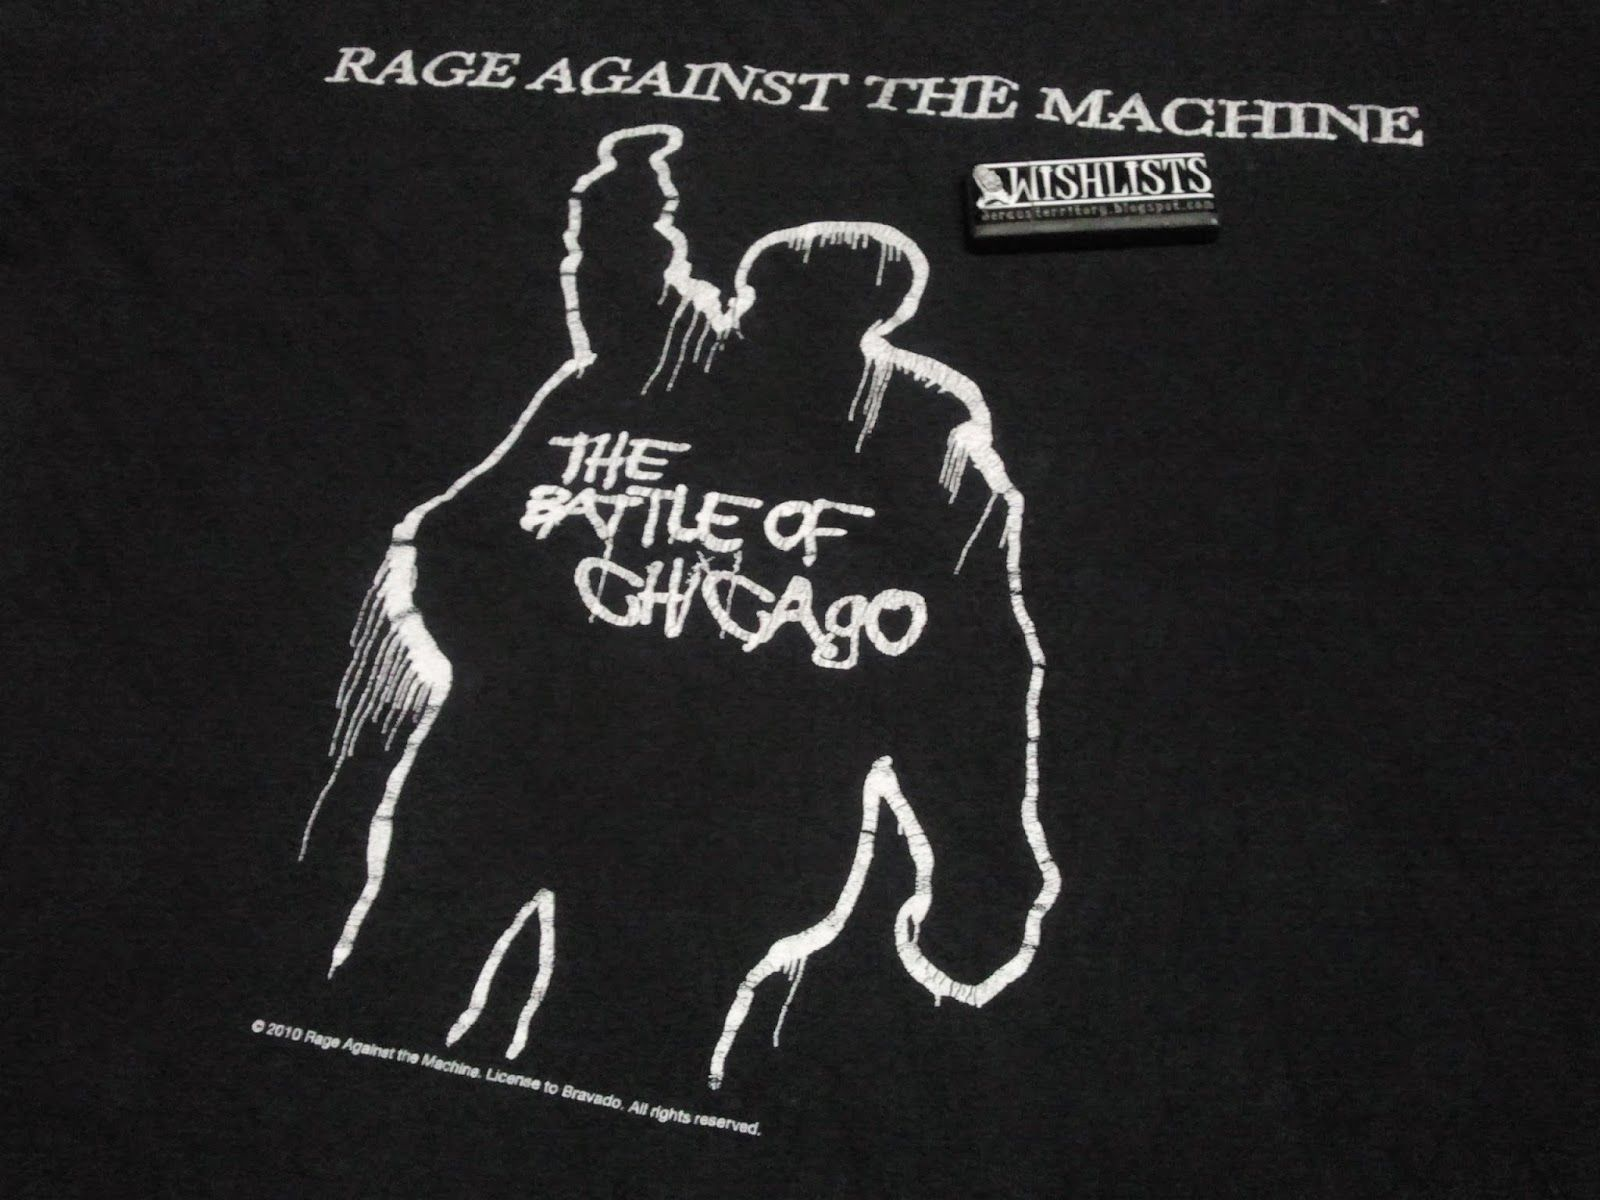 Rage Against The Machine Wallpapers Top Free Rage Against The